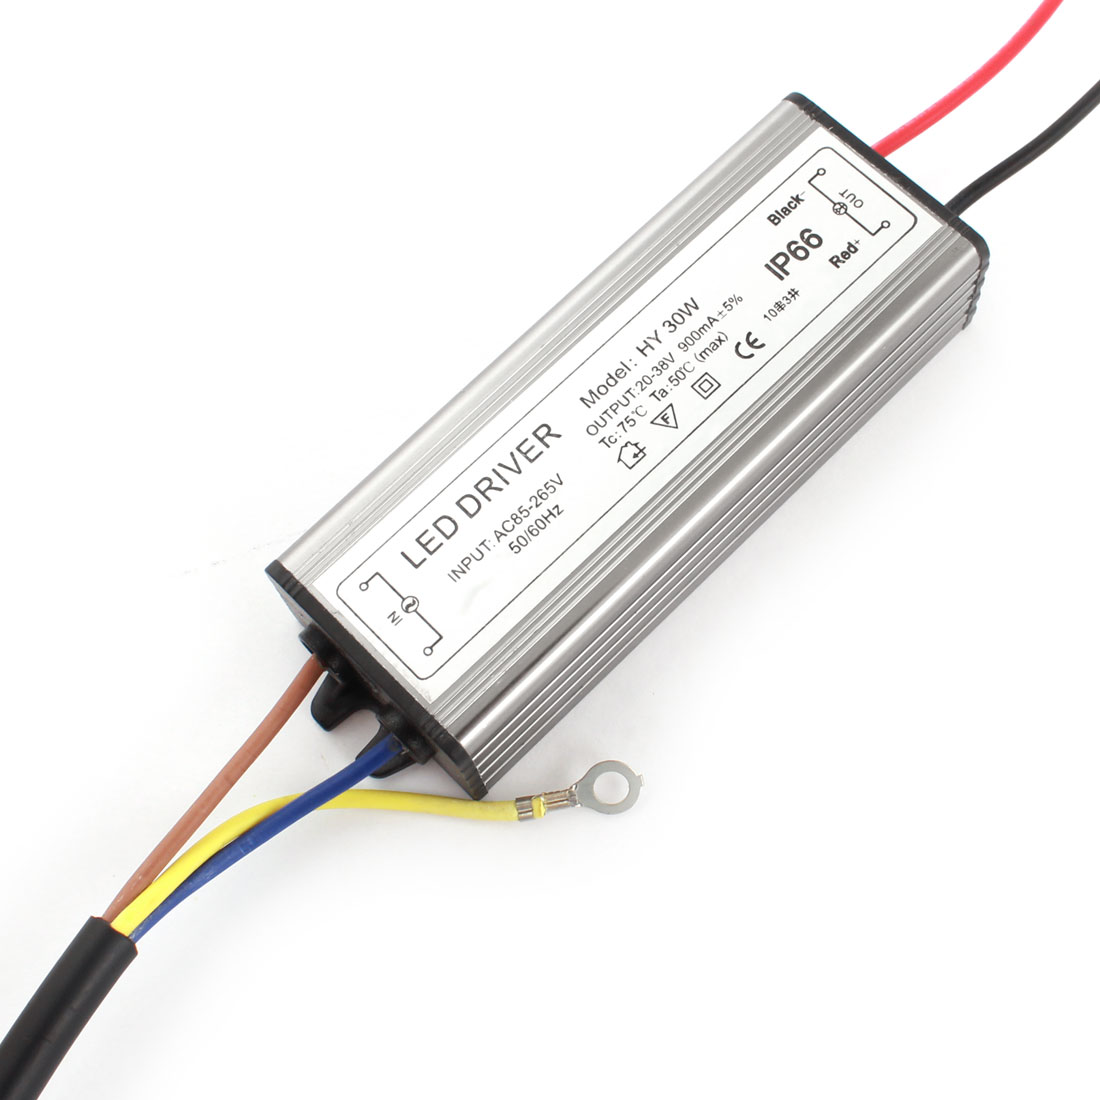 AC 85-265V to DC 20-38V Aluminum Waterproof High Power LED Driver 30W Gray